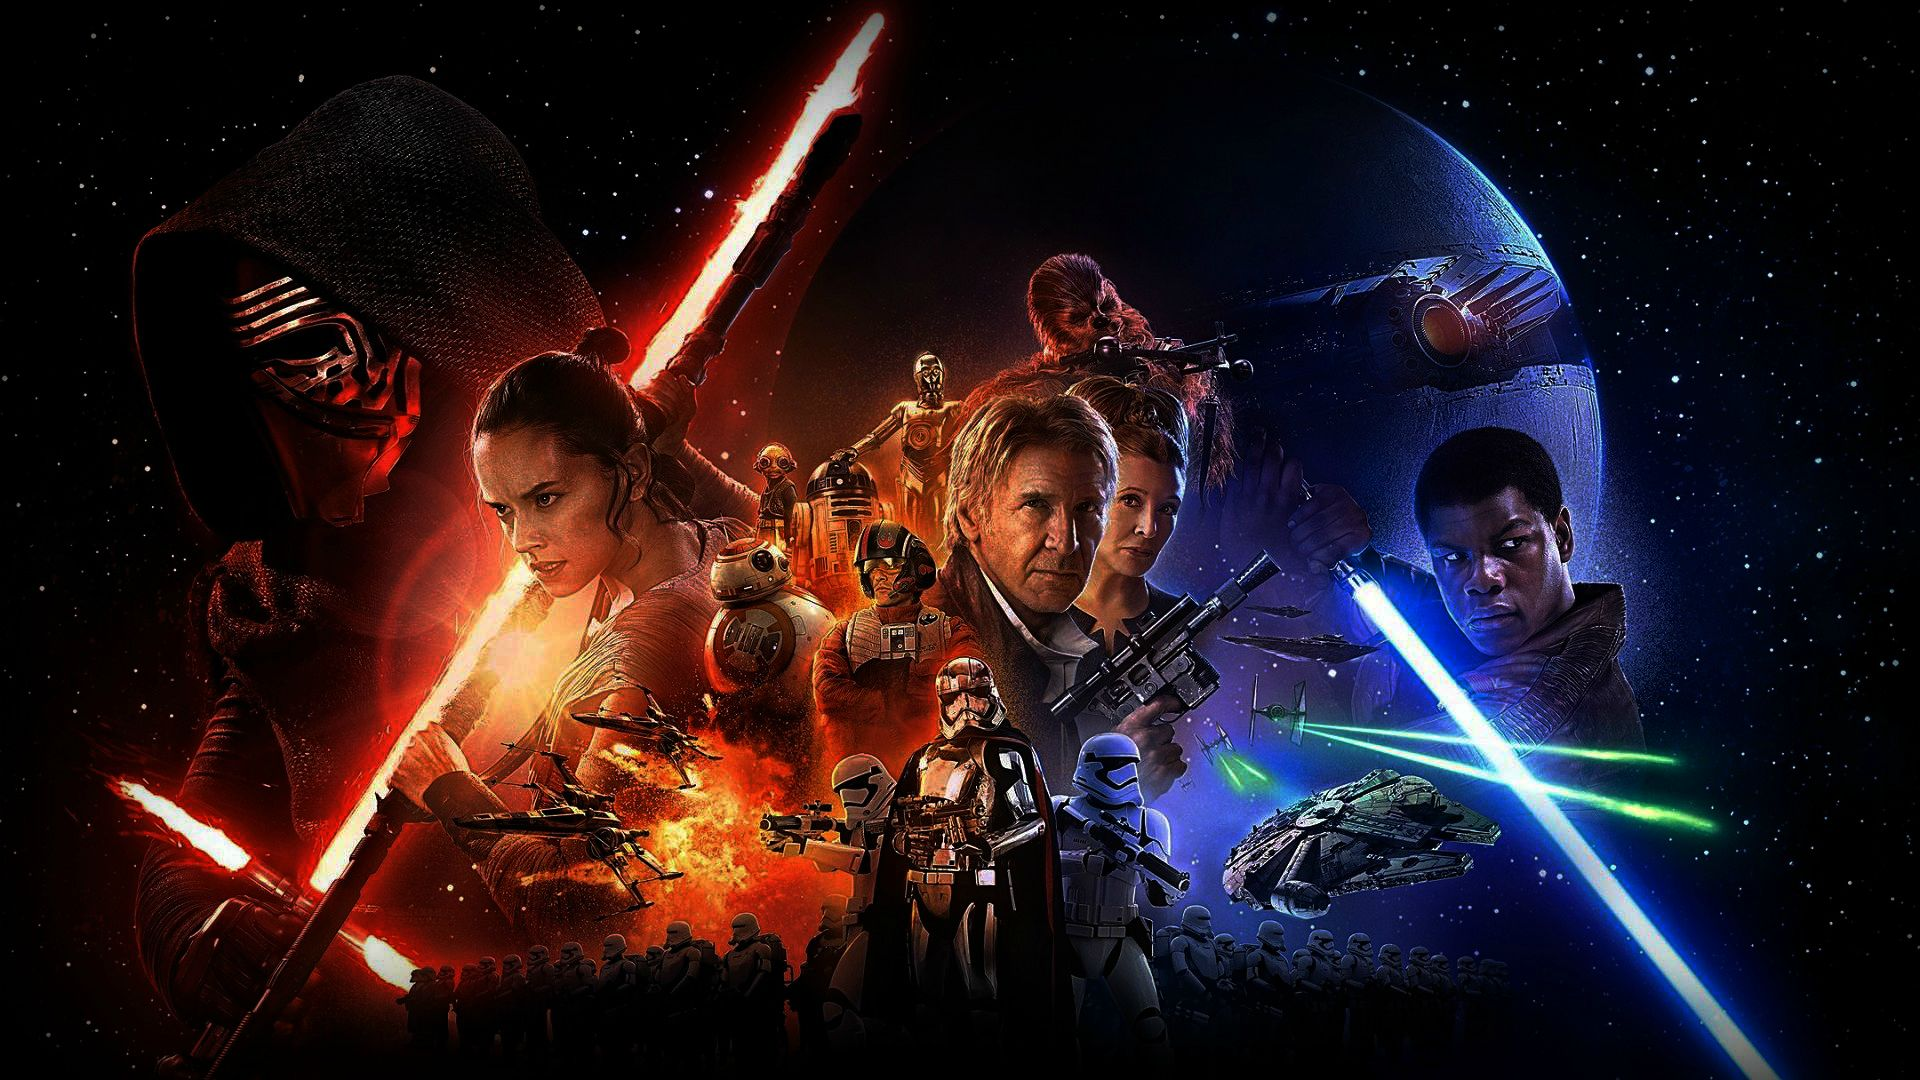 Star Wars The Force Awakens 2015 Is Stronger Than Anticipated Review Mesh The Movie Freak